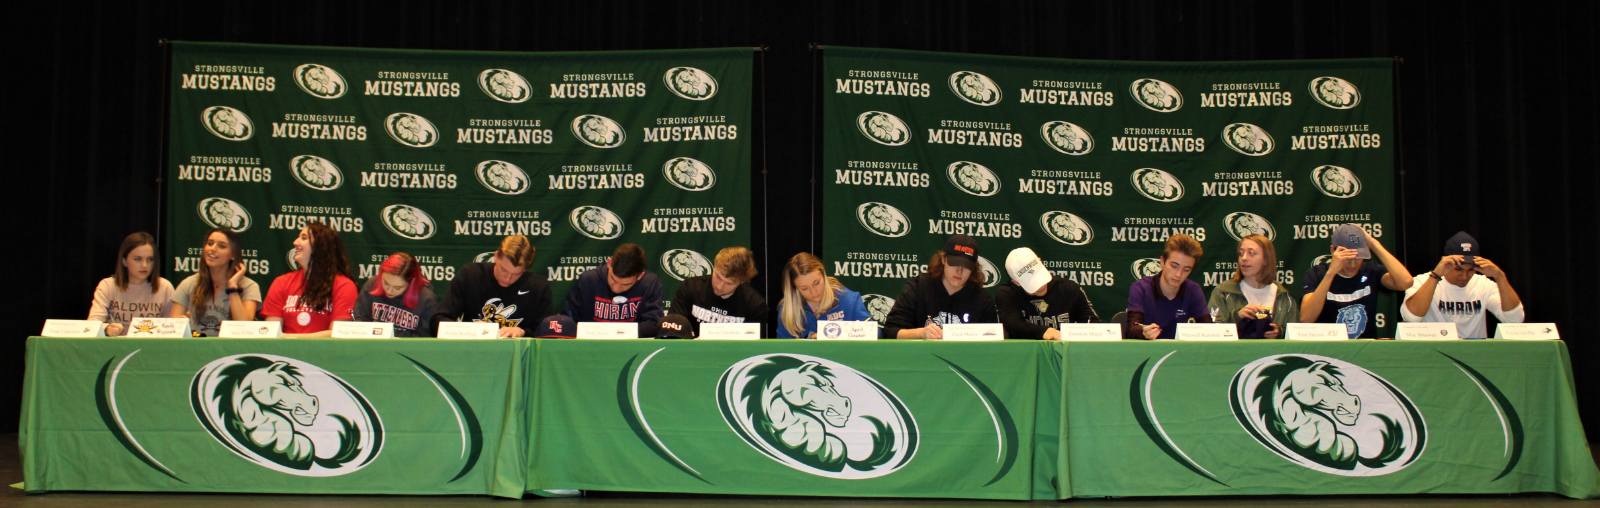 14 Athletes sign letters of intent at ceremony